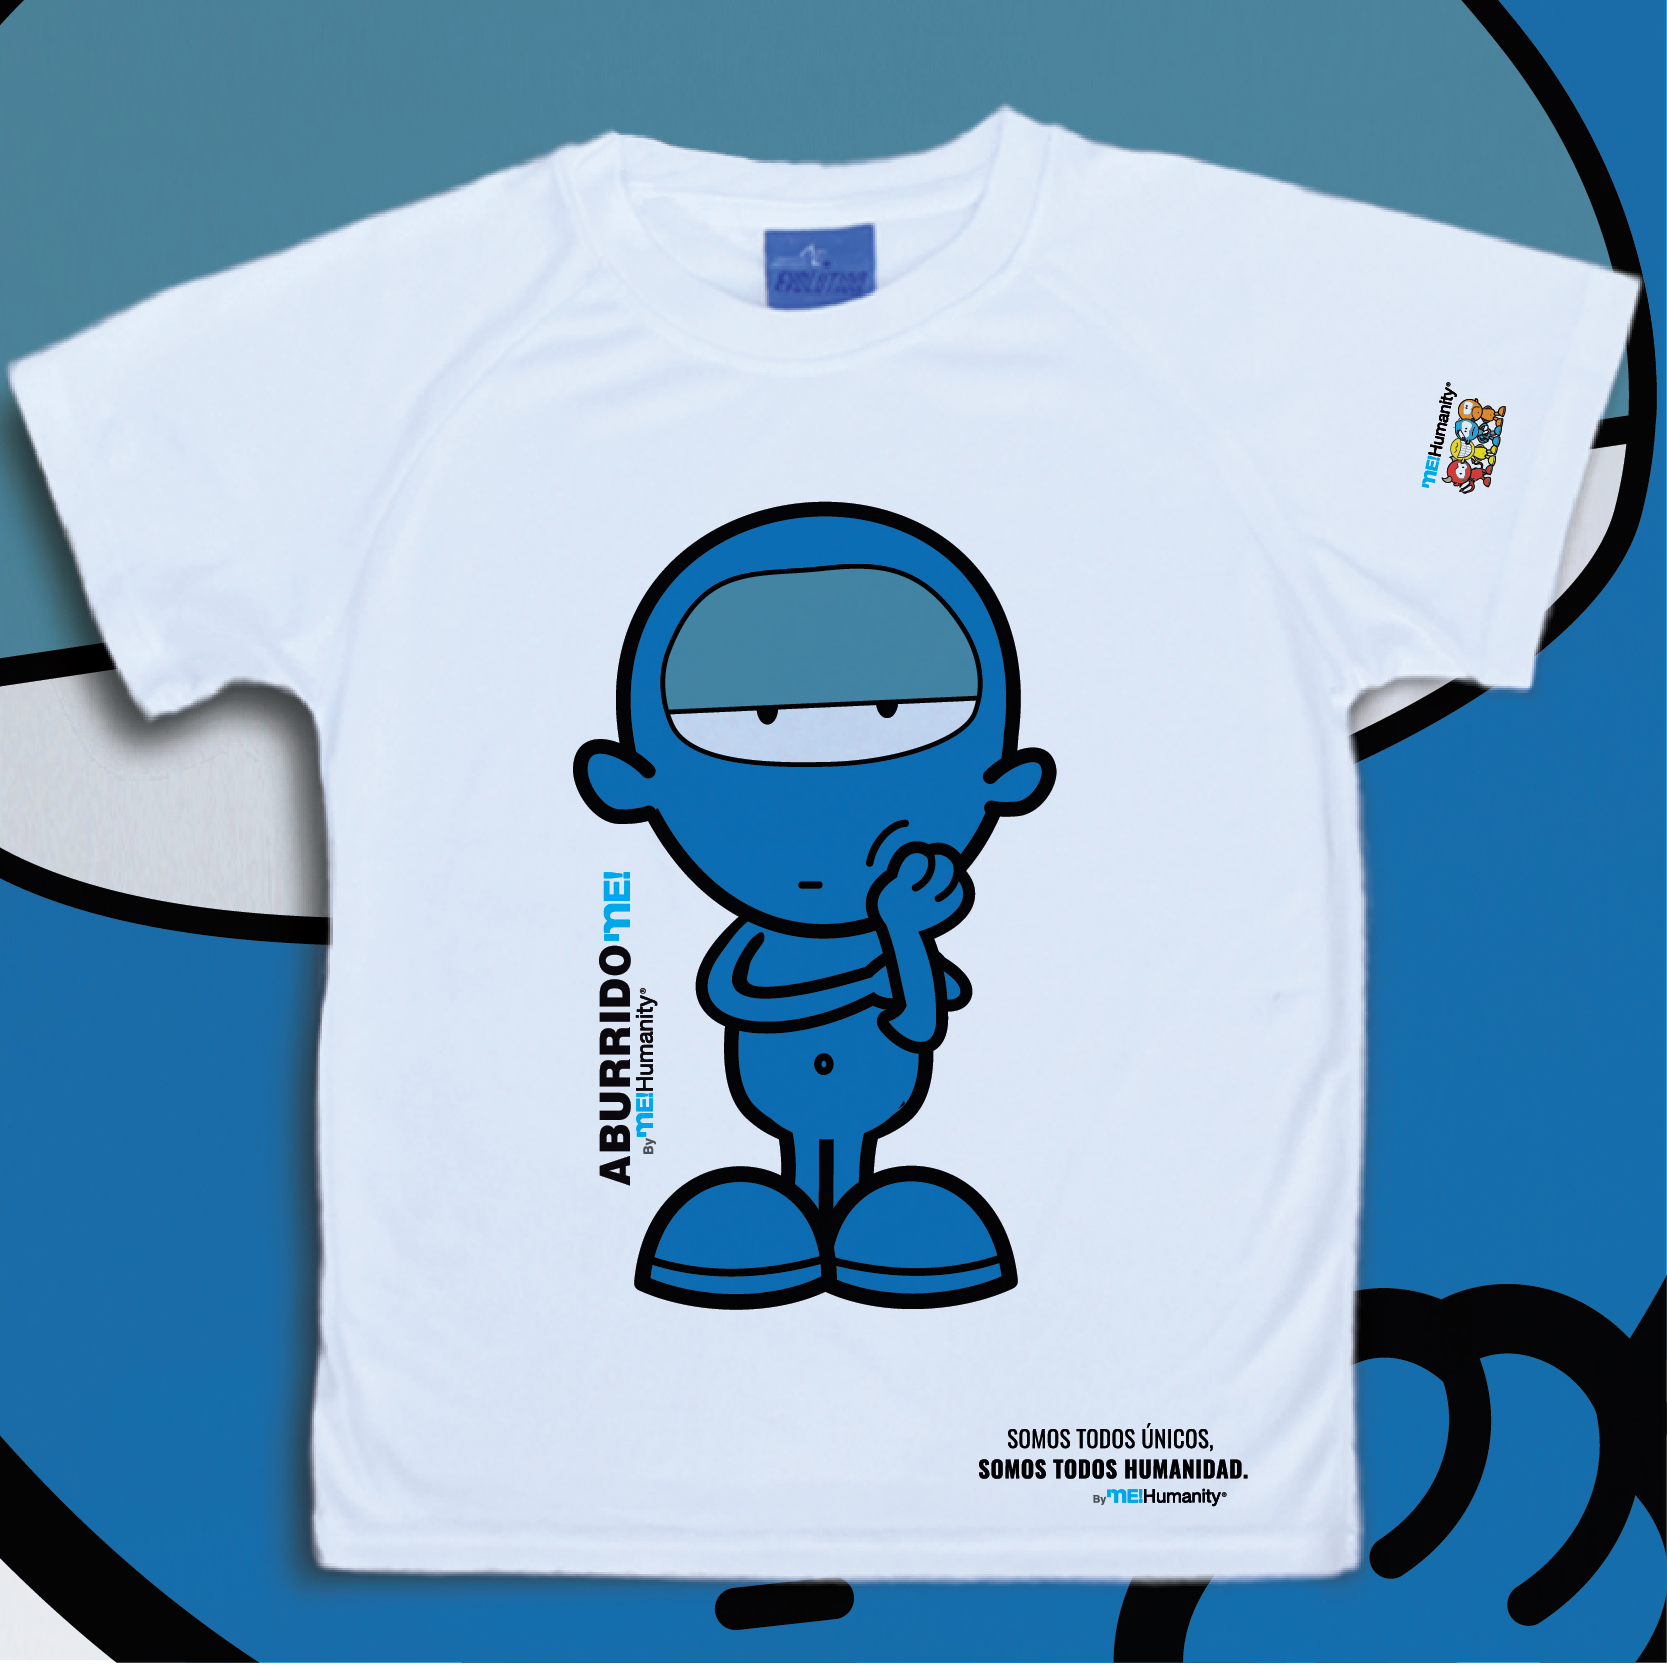 Remeras mehumanity-33